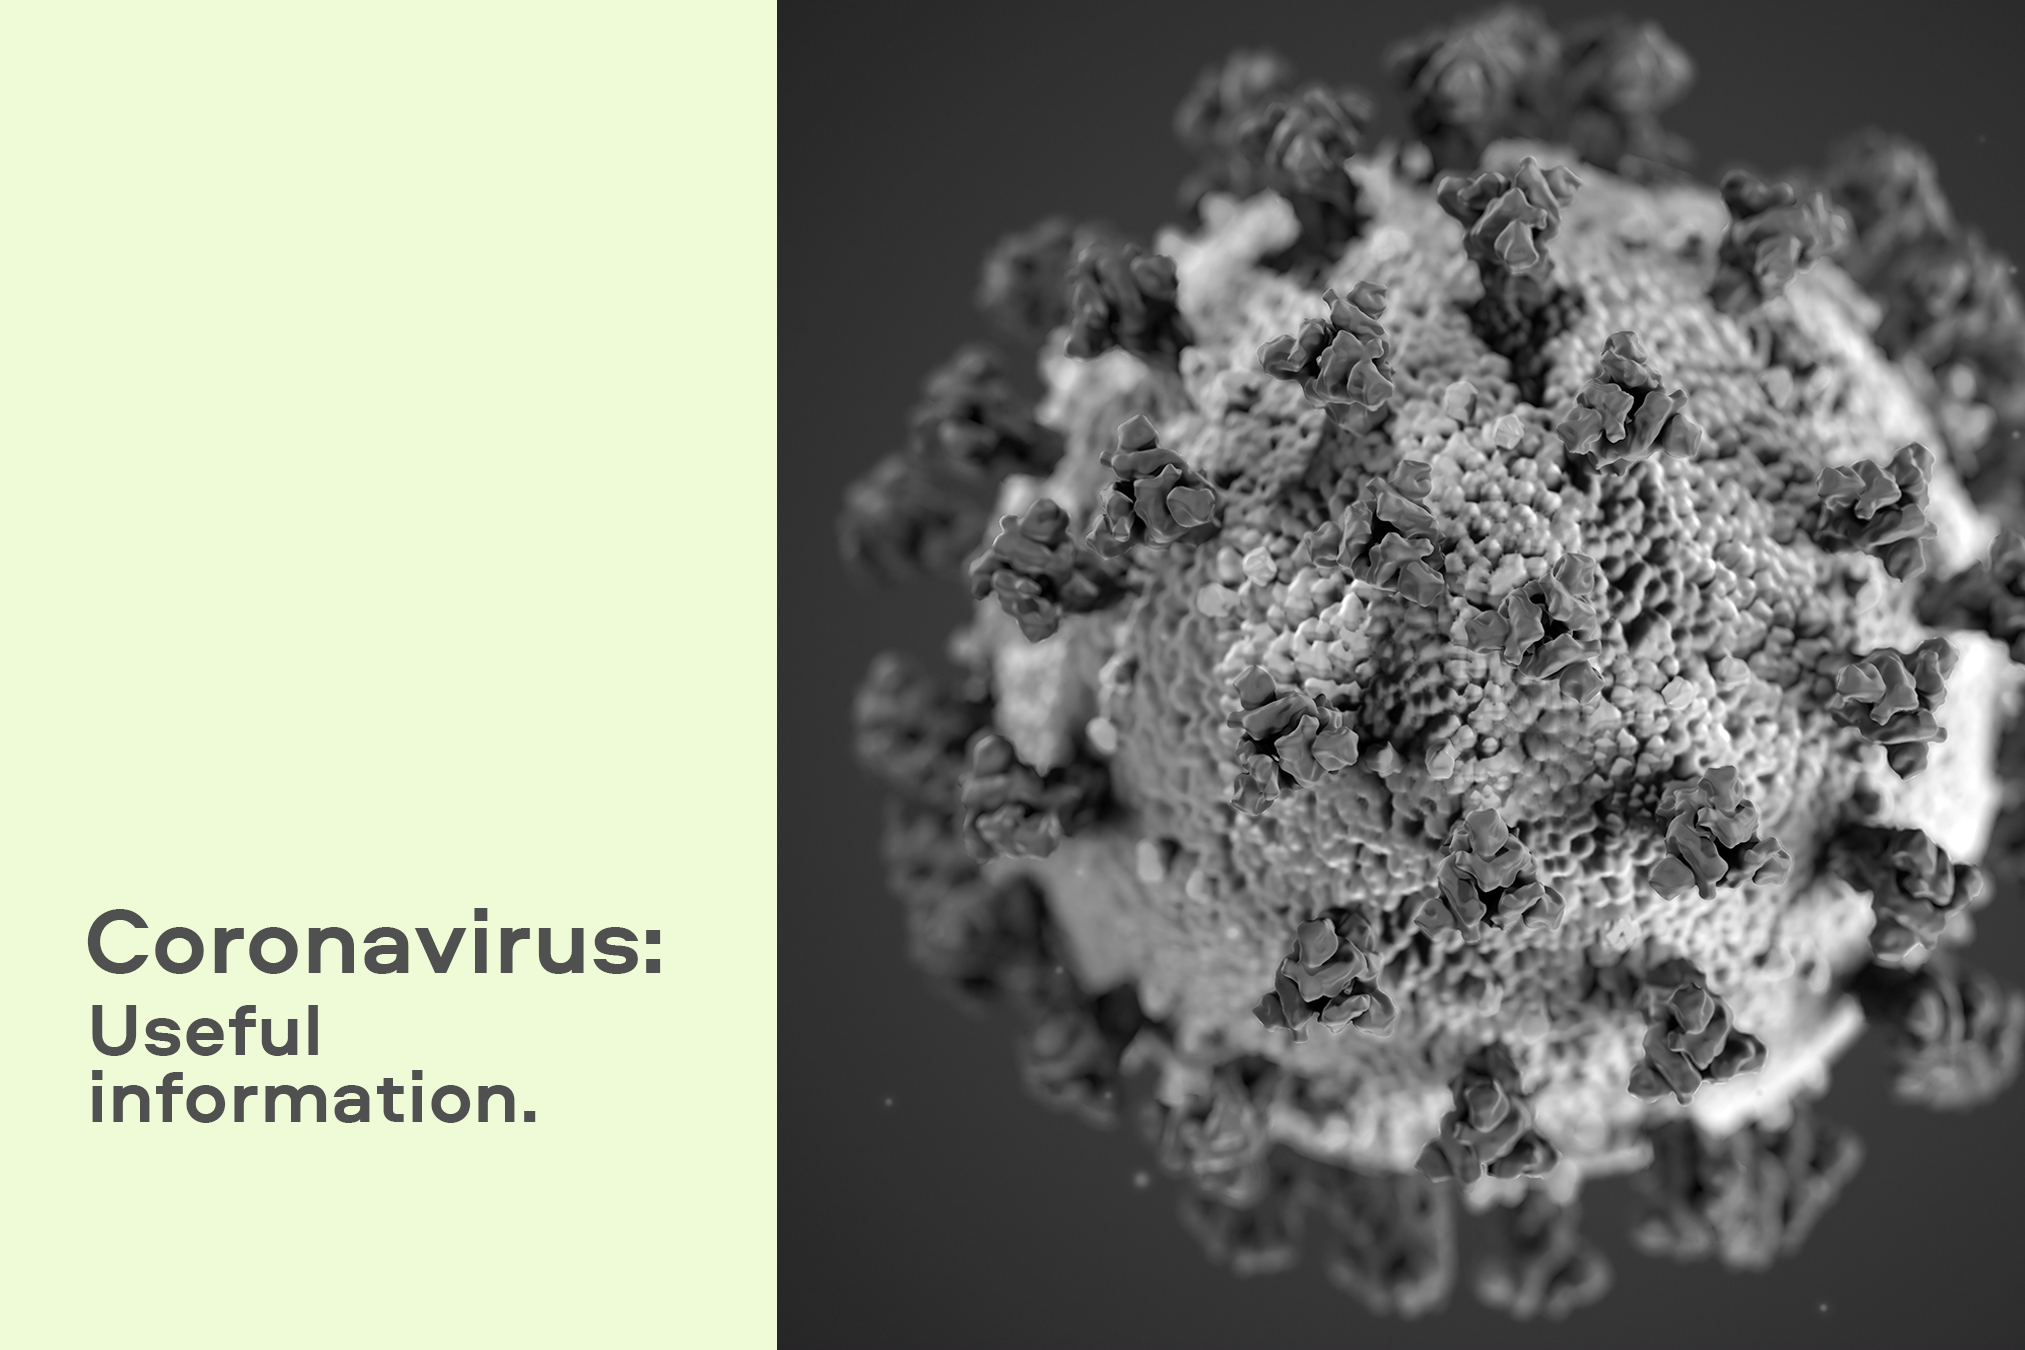 Coronavirus: Useful Information